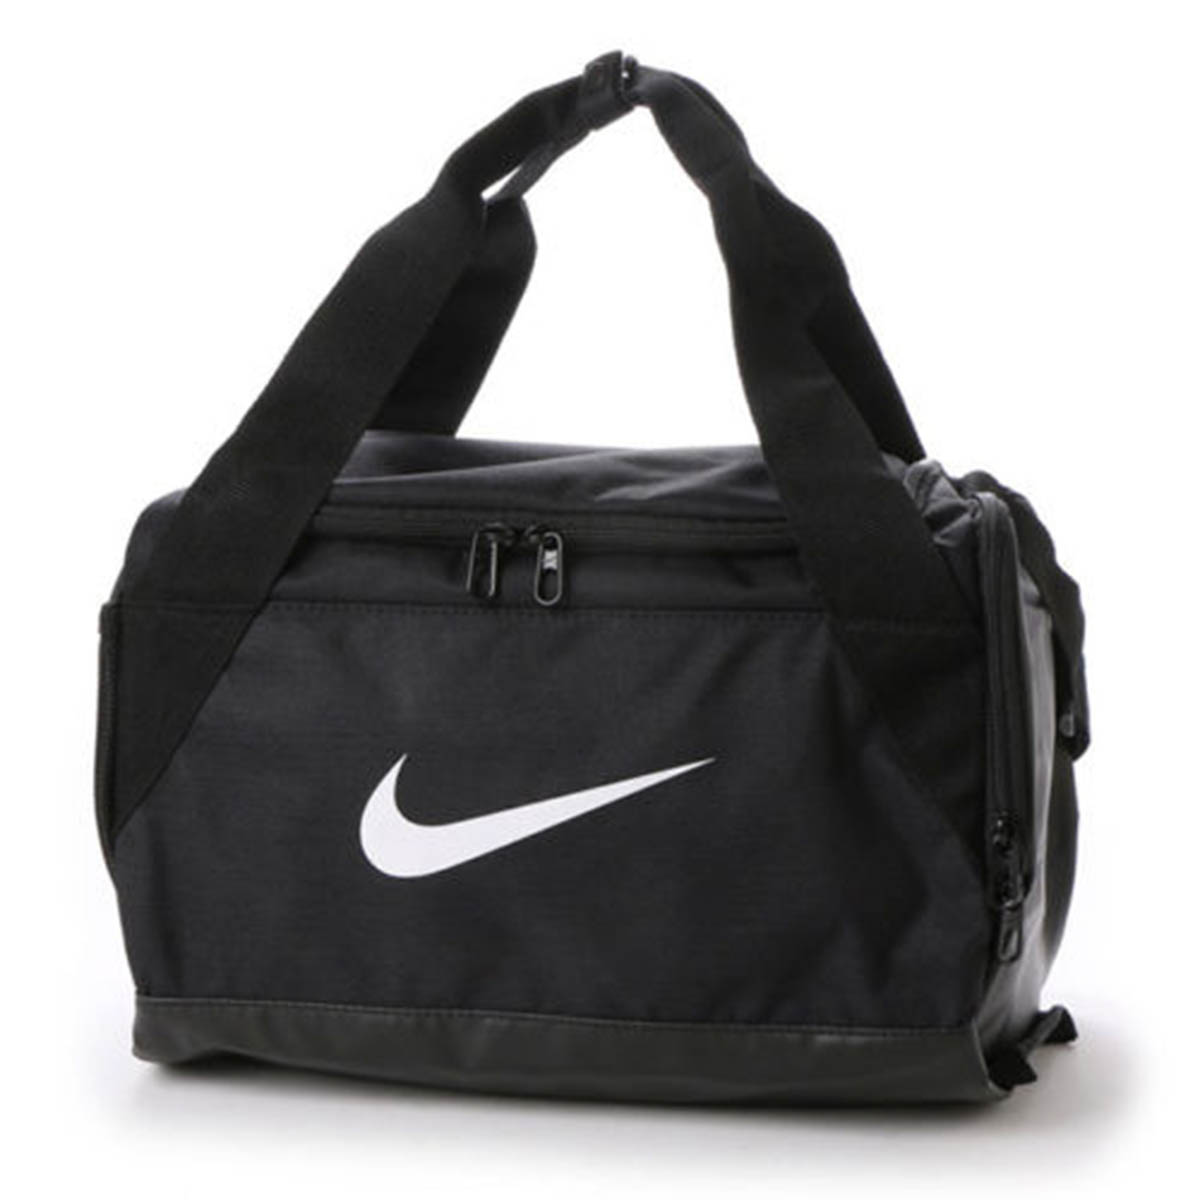 c39303a4e4b9 Buy Nike Brasilia XS Duffle Bag (Black) Online at Lowest Price in India